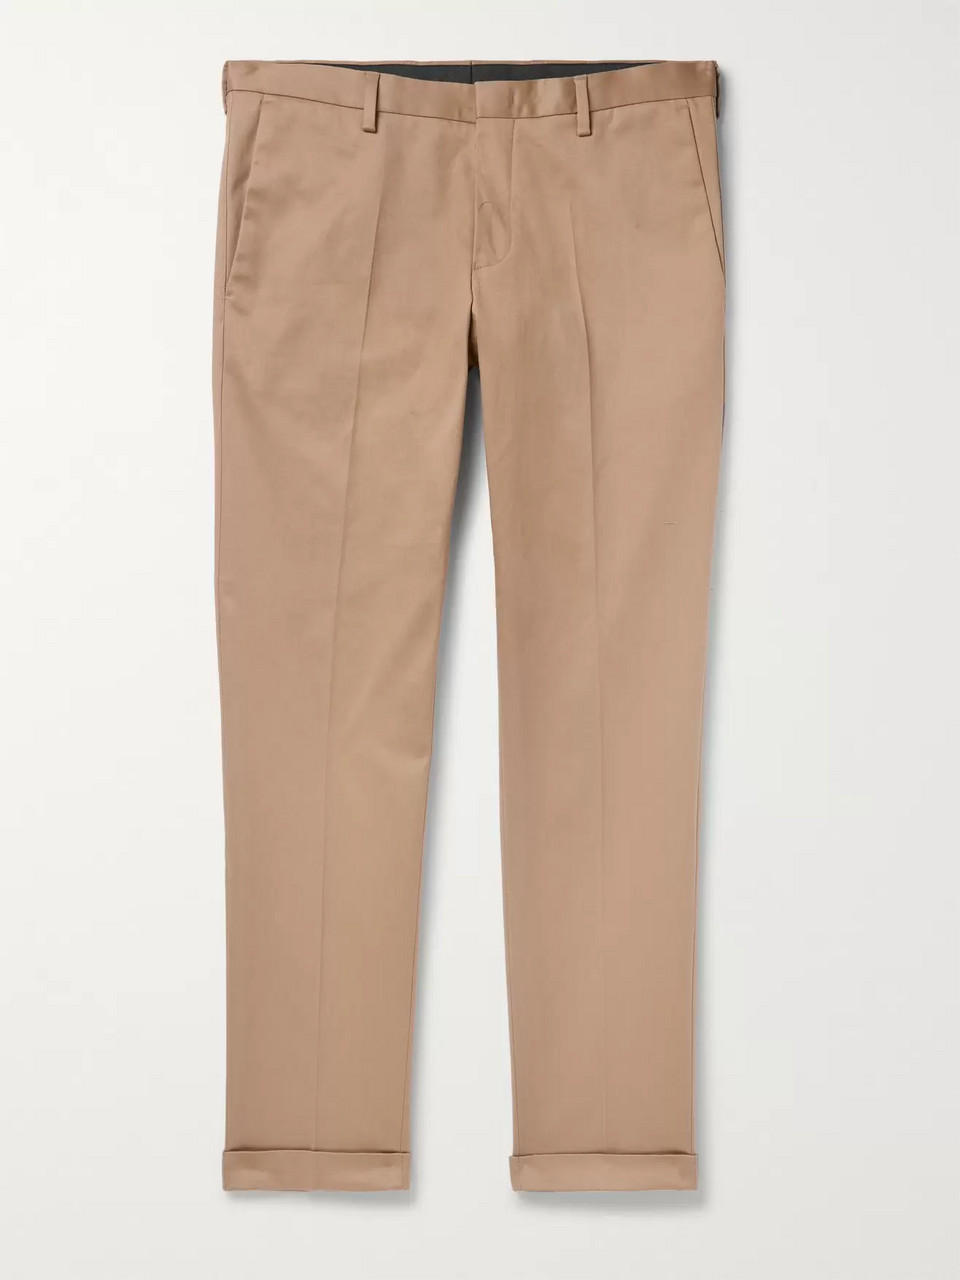 Paul Smith Slim-Fit Tapered Cotton-Blend Twill Trousers